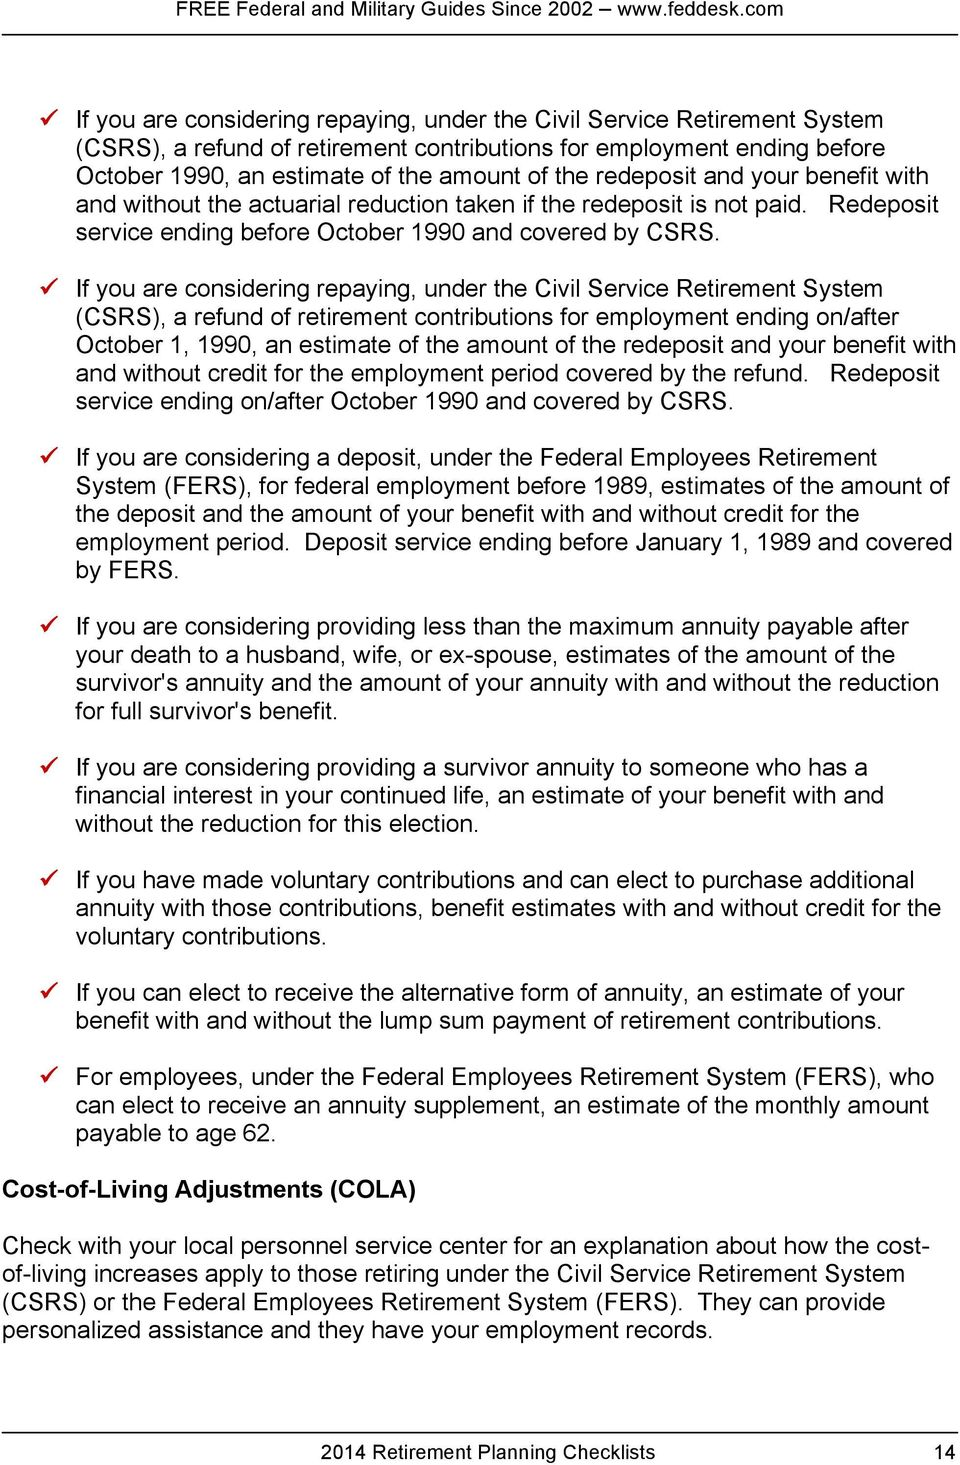 If you are considering repaying, under the Civil Service Retirement System (CSRS), a refund of retirement contributions for employment ending on/after October 1, 1990, an estimate of the amount of